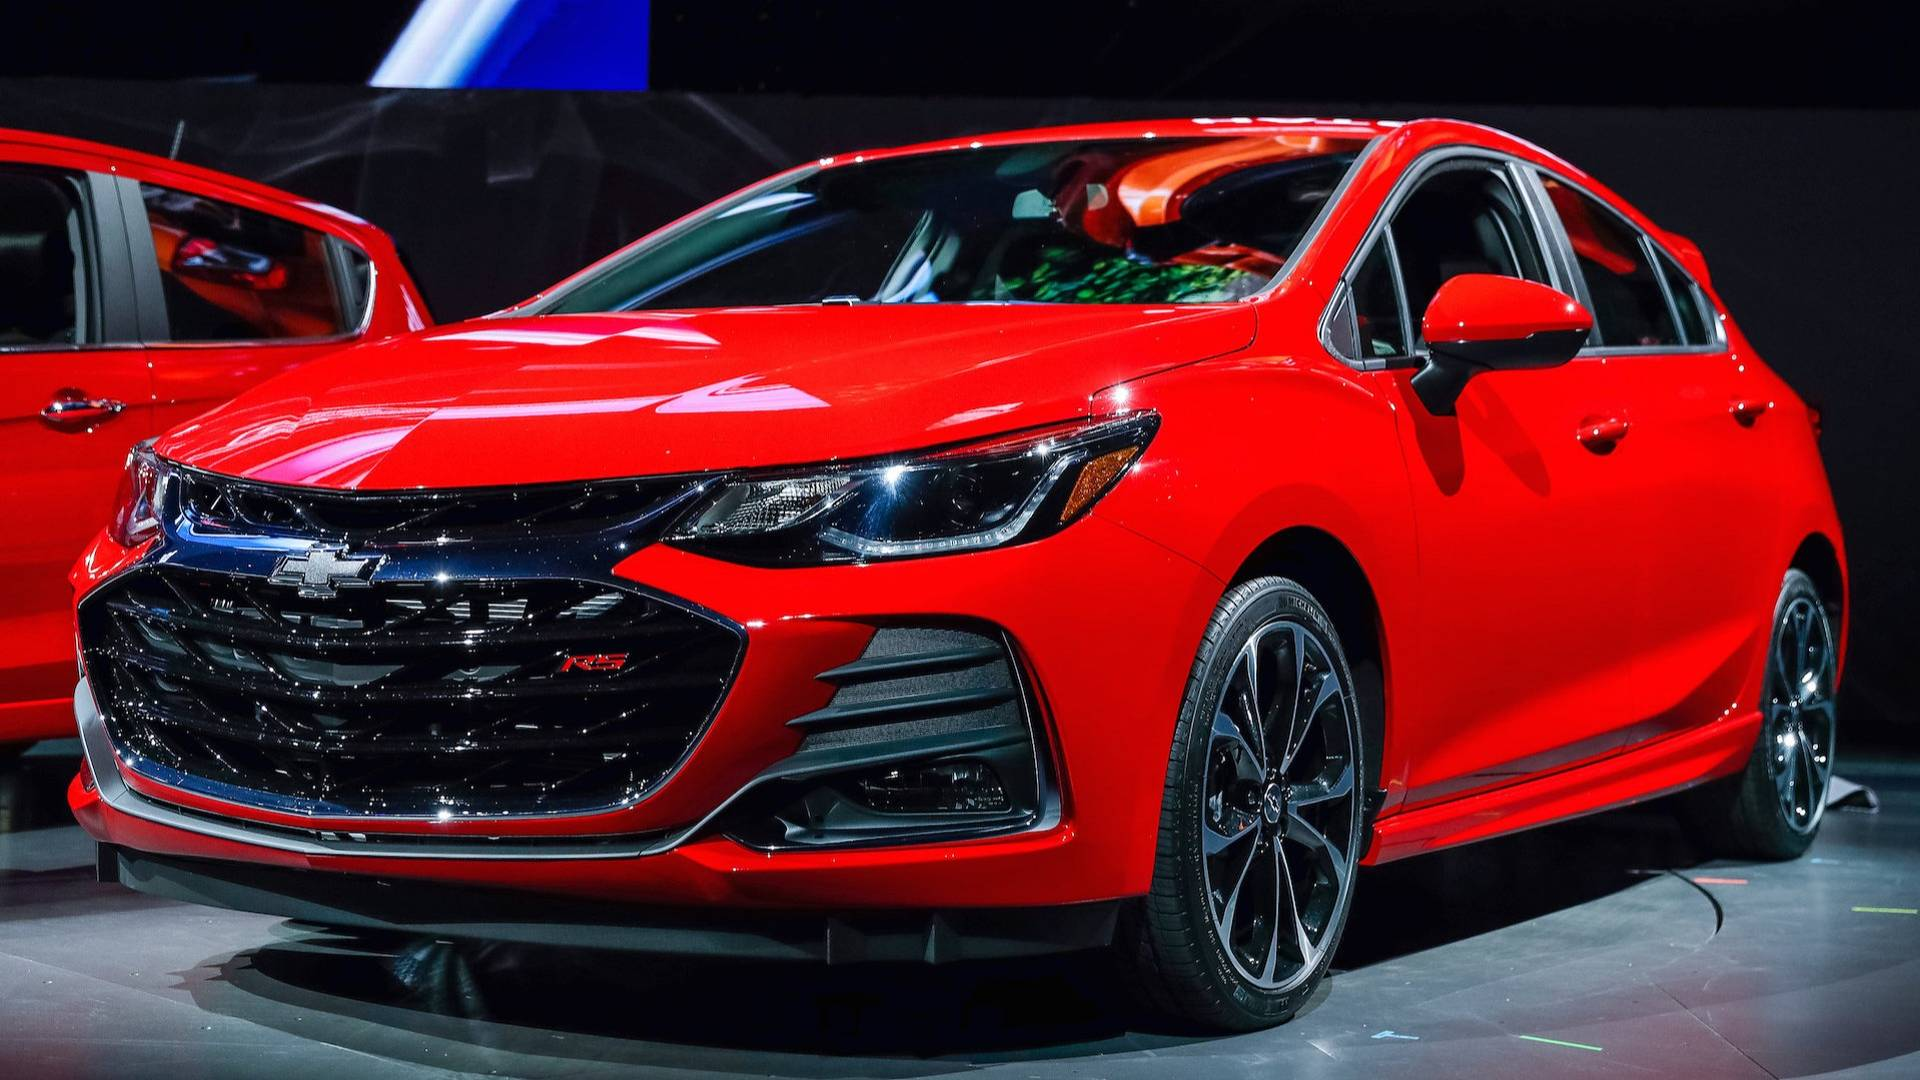 Chevy Cruze Ford Focus Owners Switching To Other Brands Report